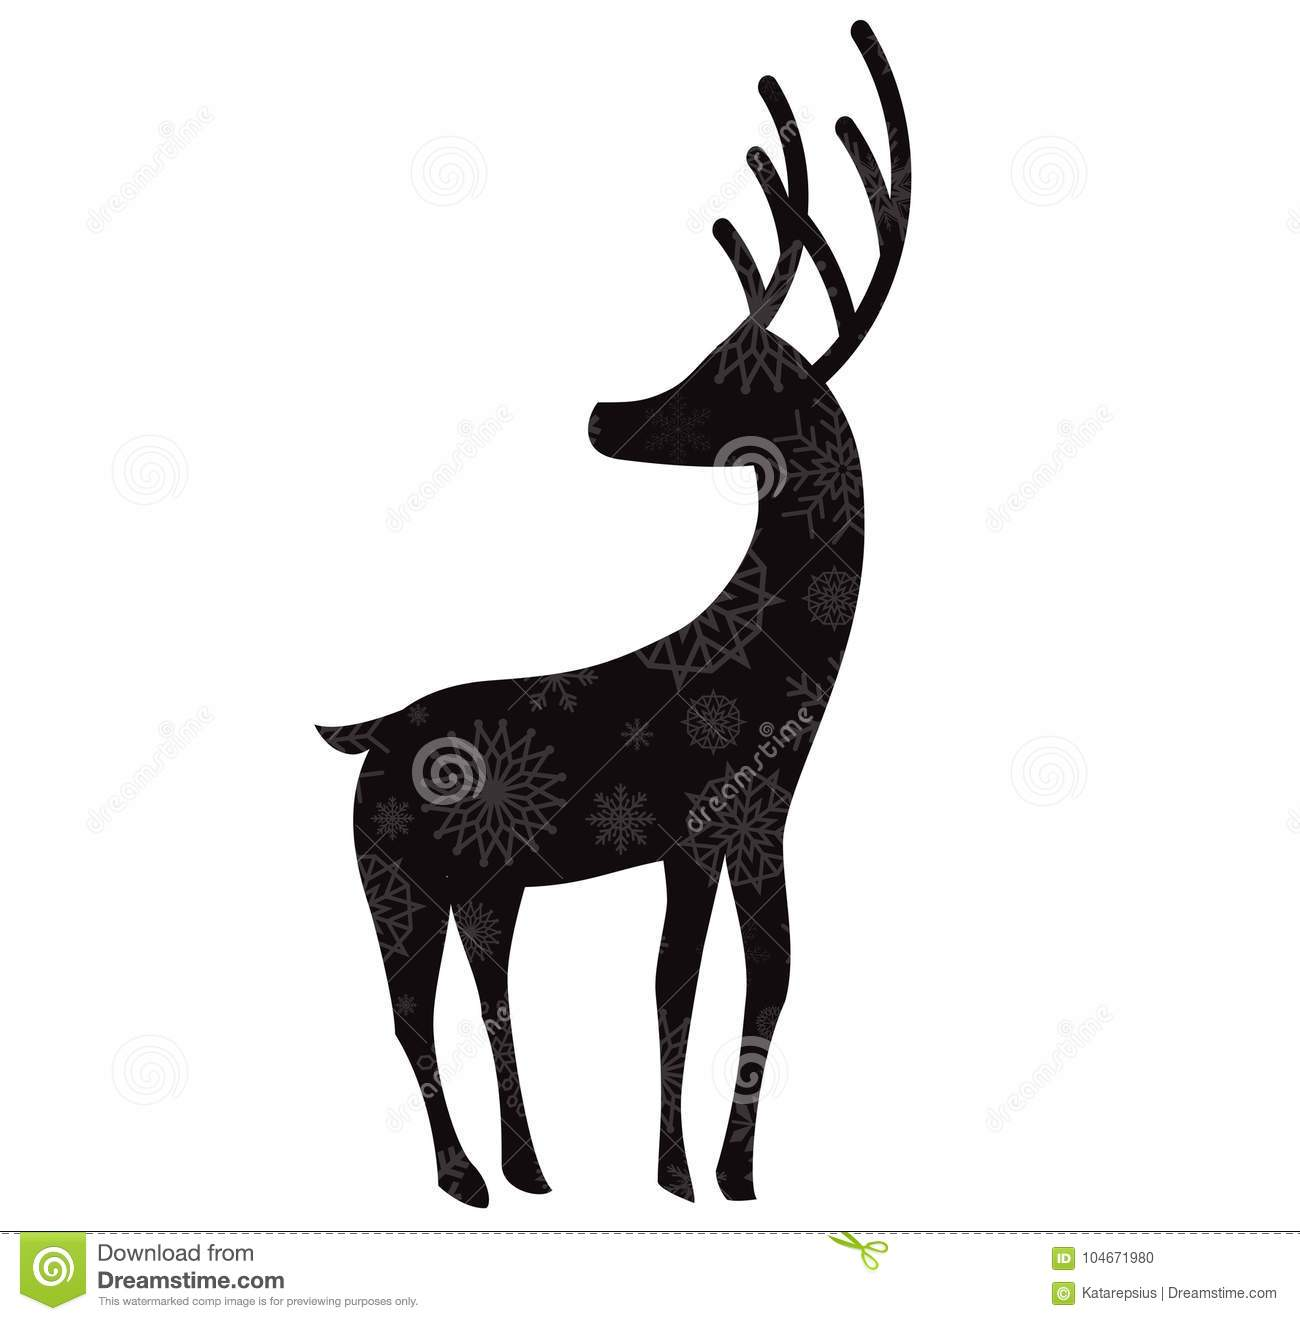 Black silhouette of reindeer with snow flakes pattern isolated on white background vector illustration icon sign symbol of deer